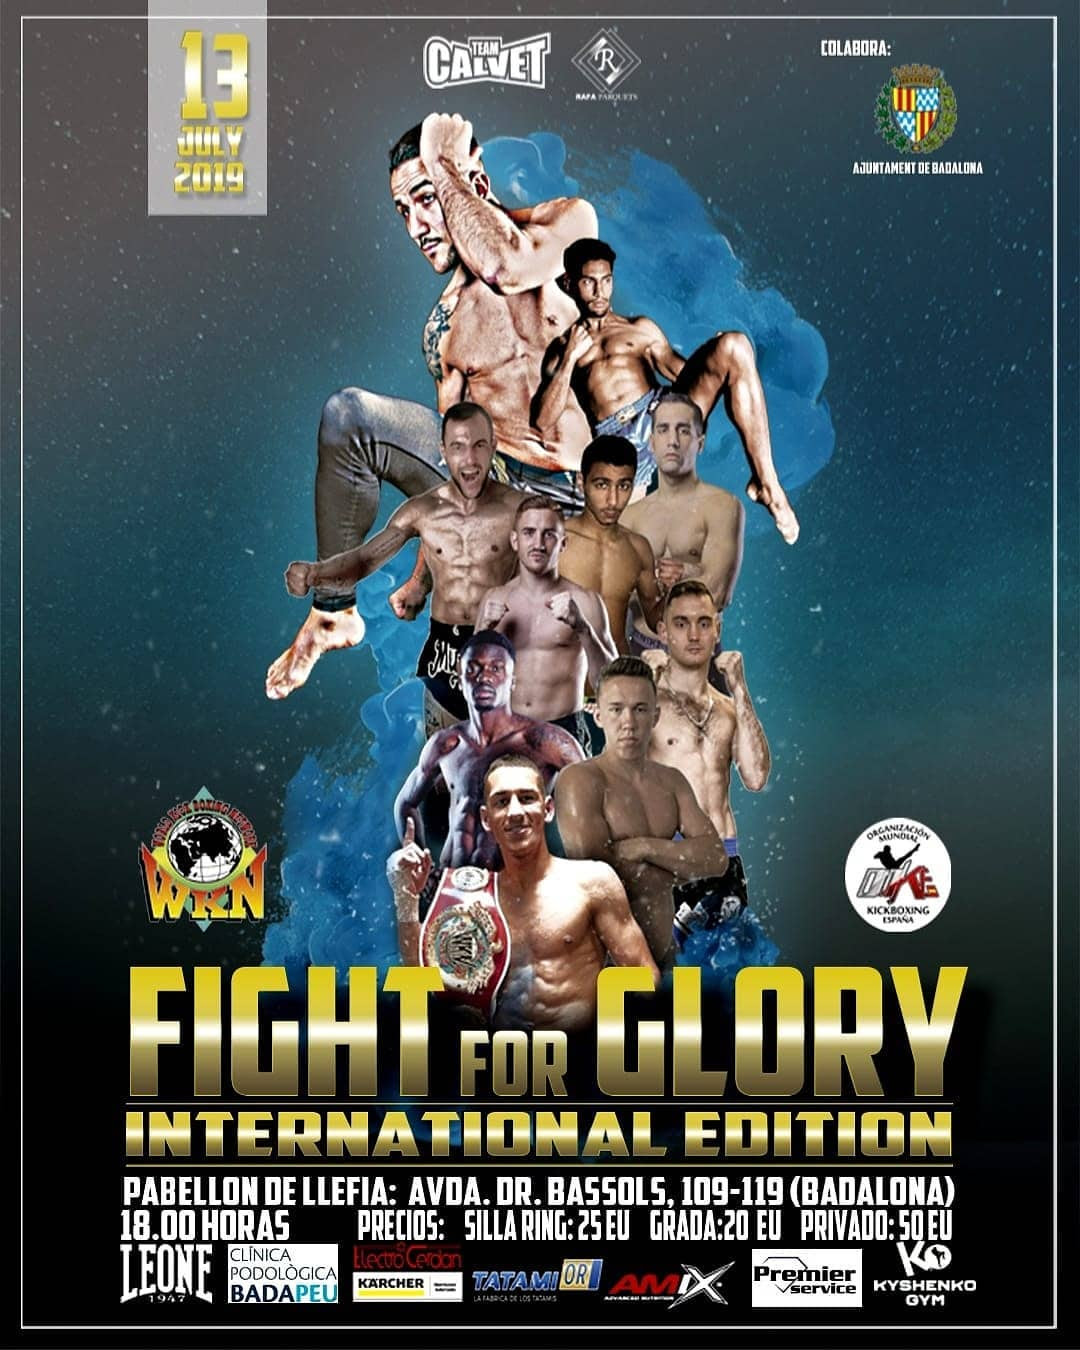 Fight for Glory: WKN International Edition this Saturday in Badalona, Spain -